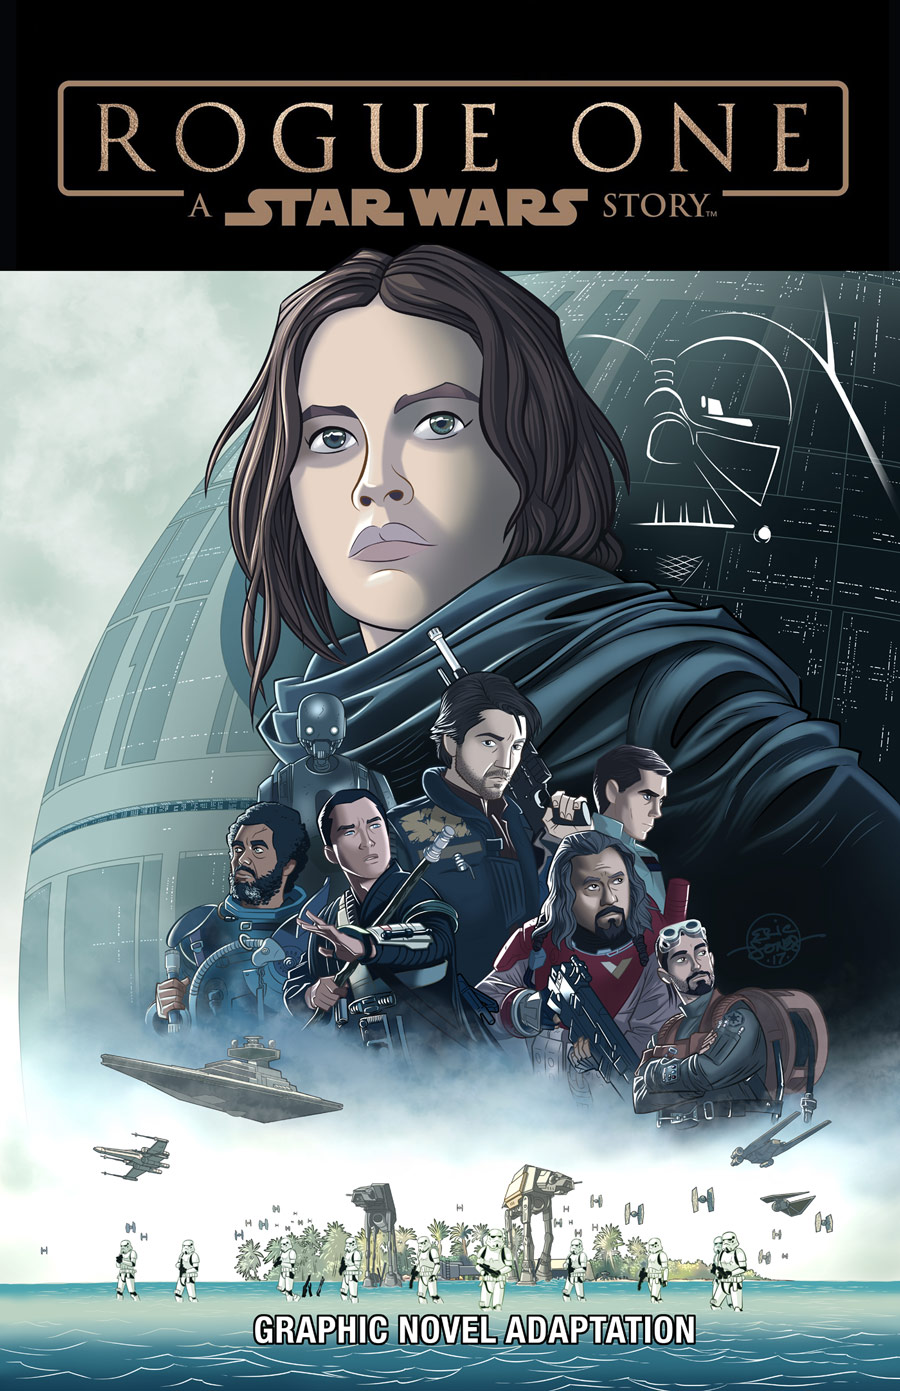 star wars rogue one gewinnspiel 2019